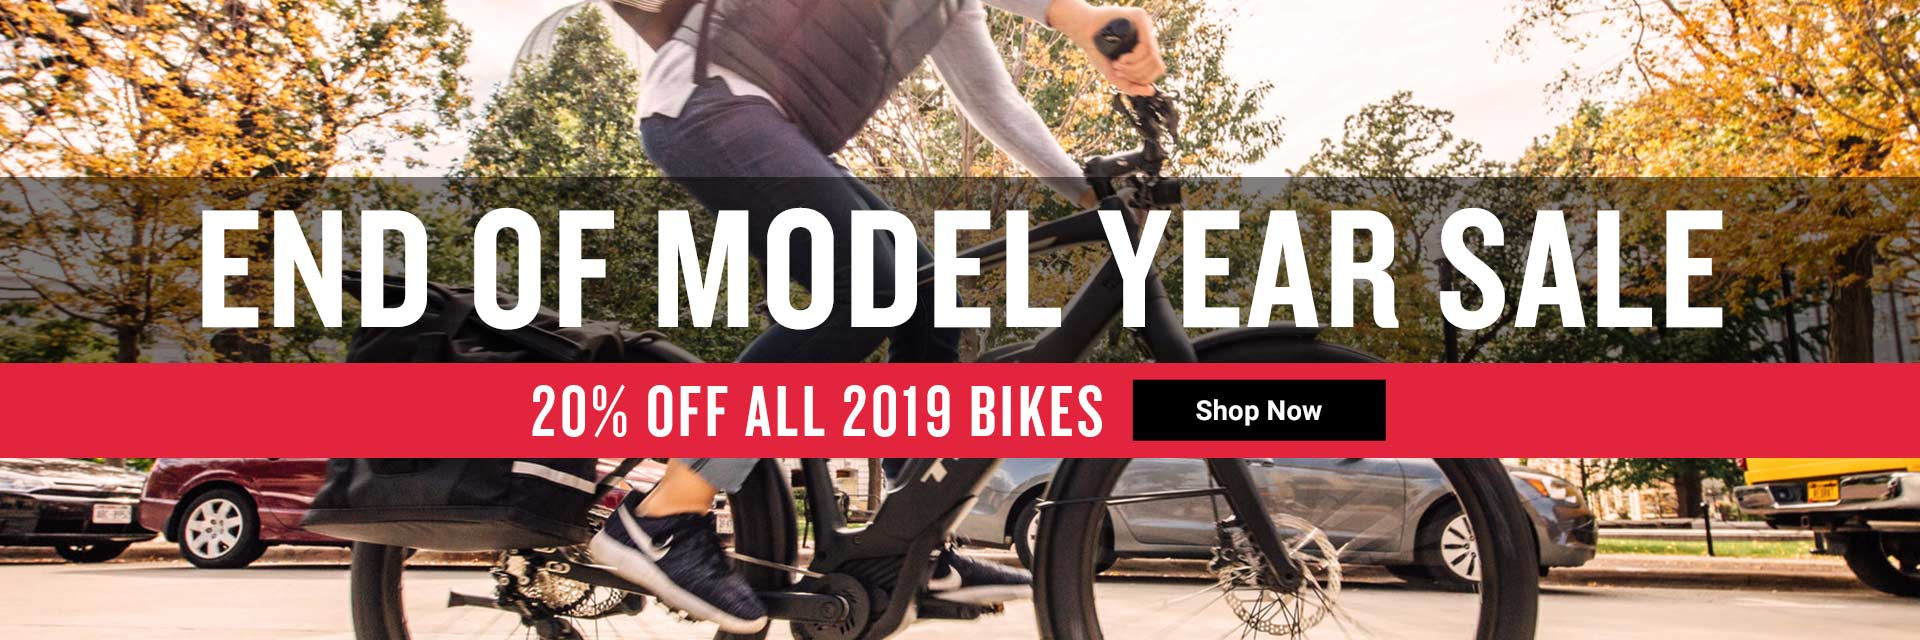 All 2019 bikes on sale